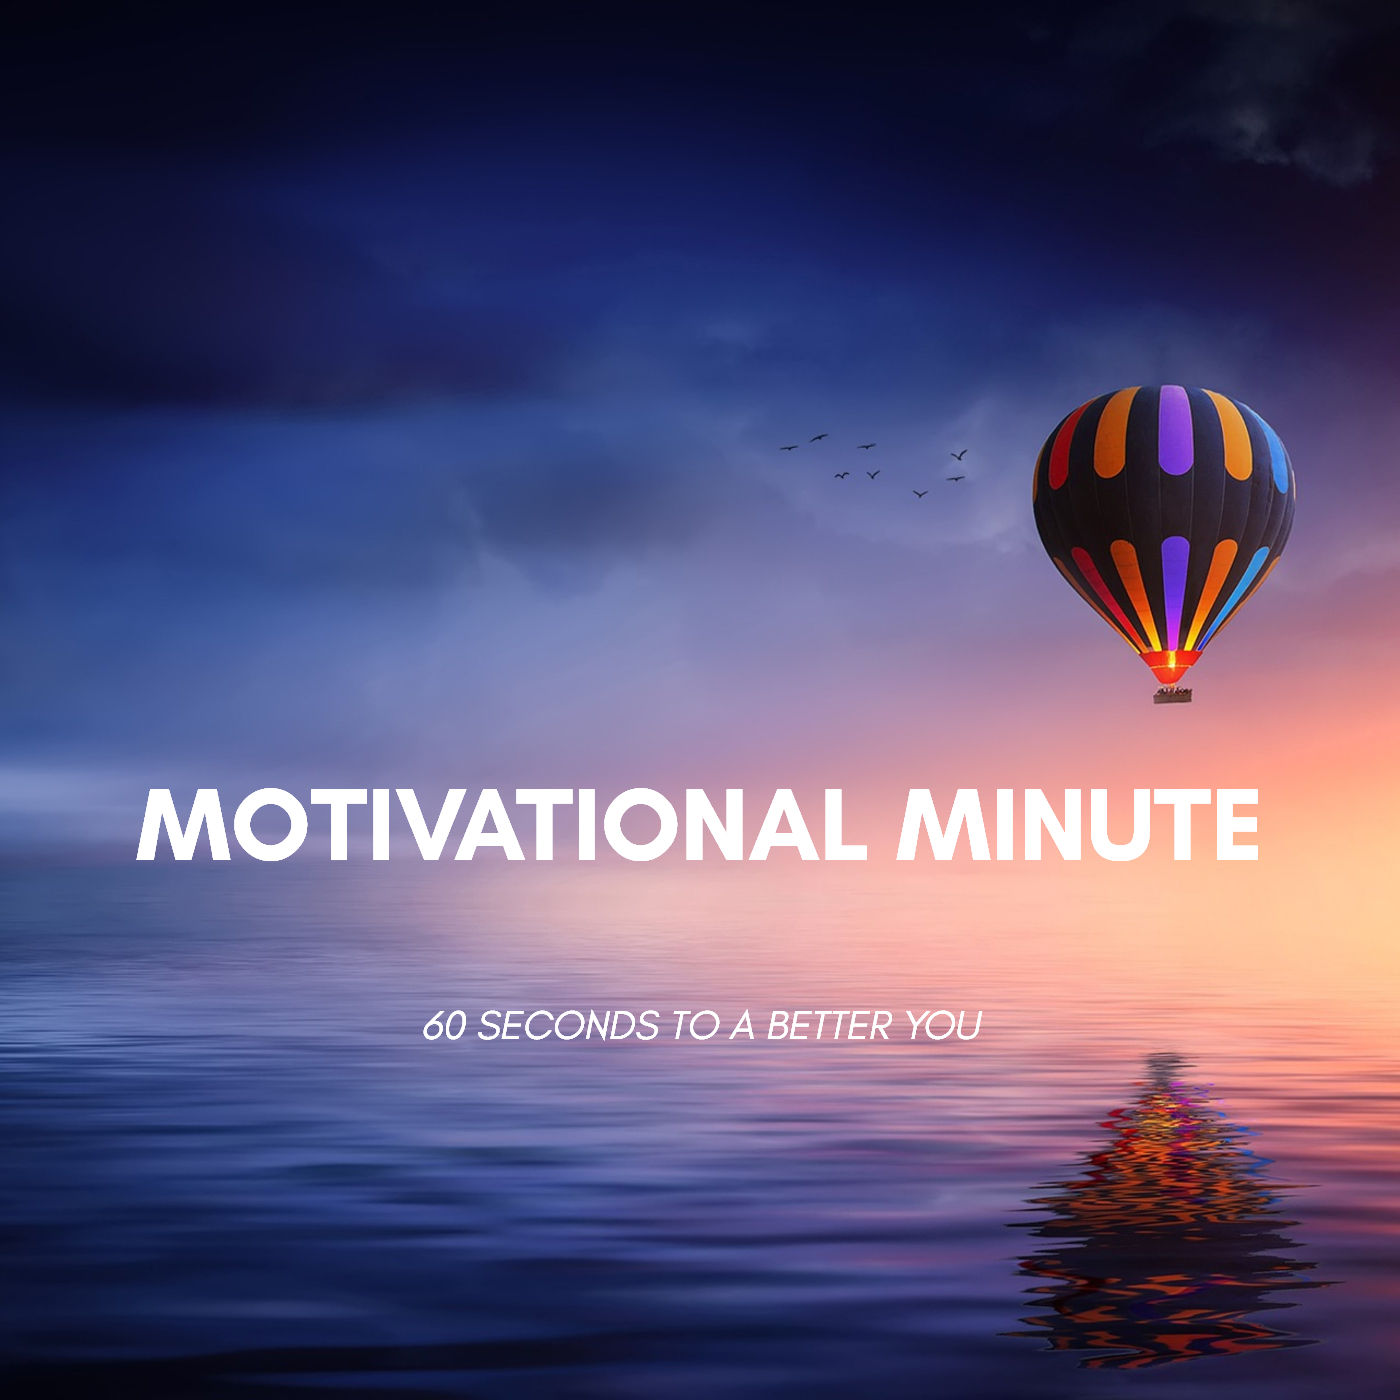 Motivational Minute  Quick Motivation for Busy People!